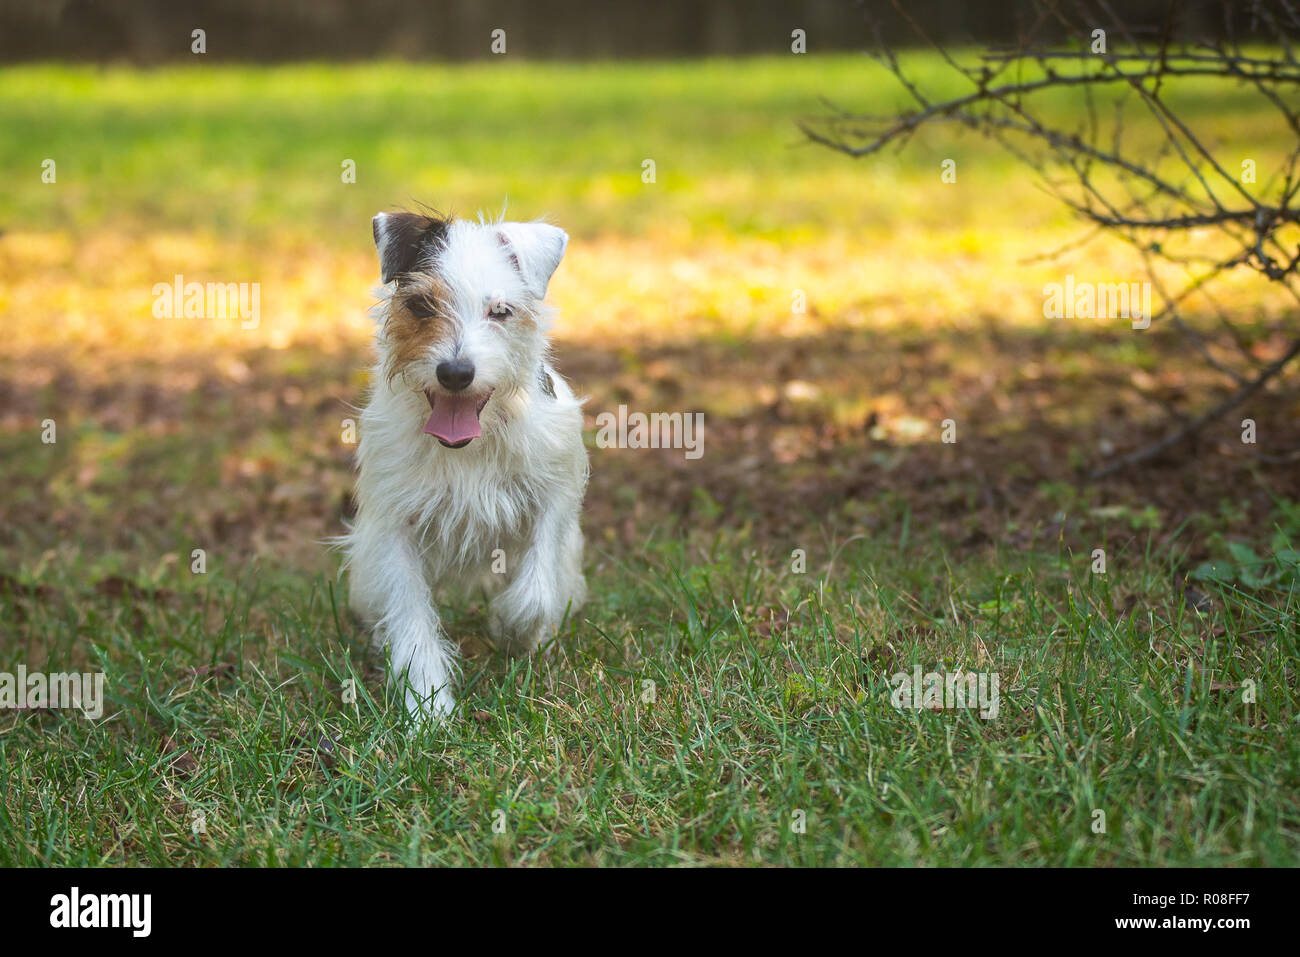 Happy Parson Russell Terrier in a field - Stock Image